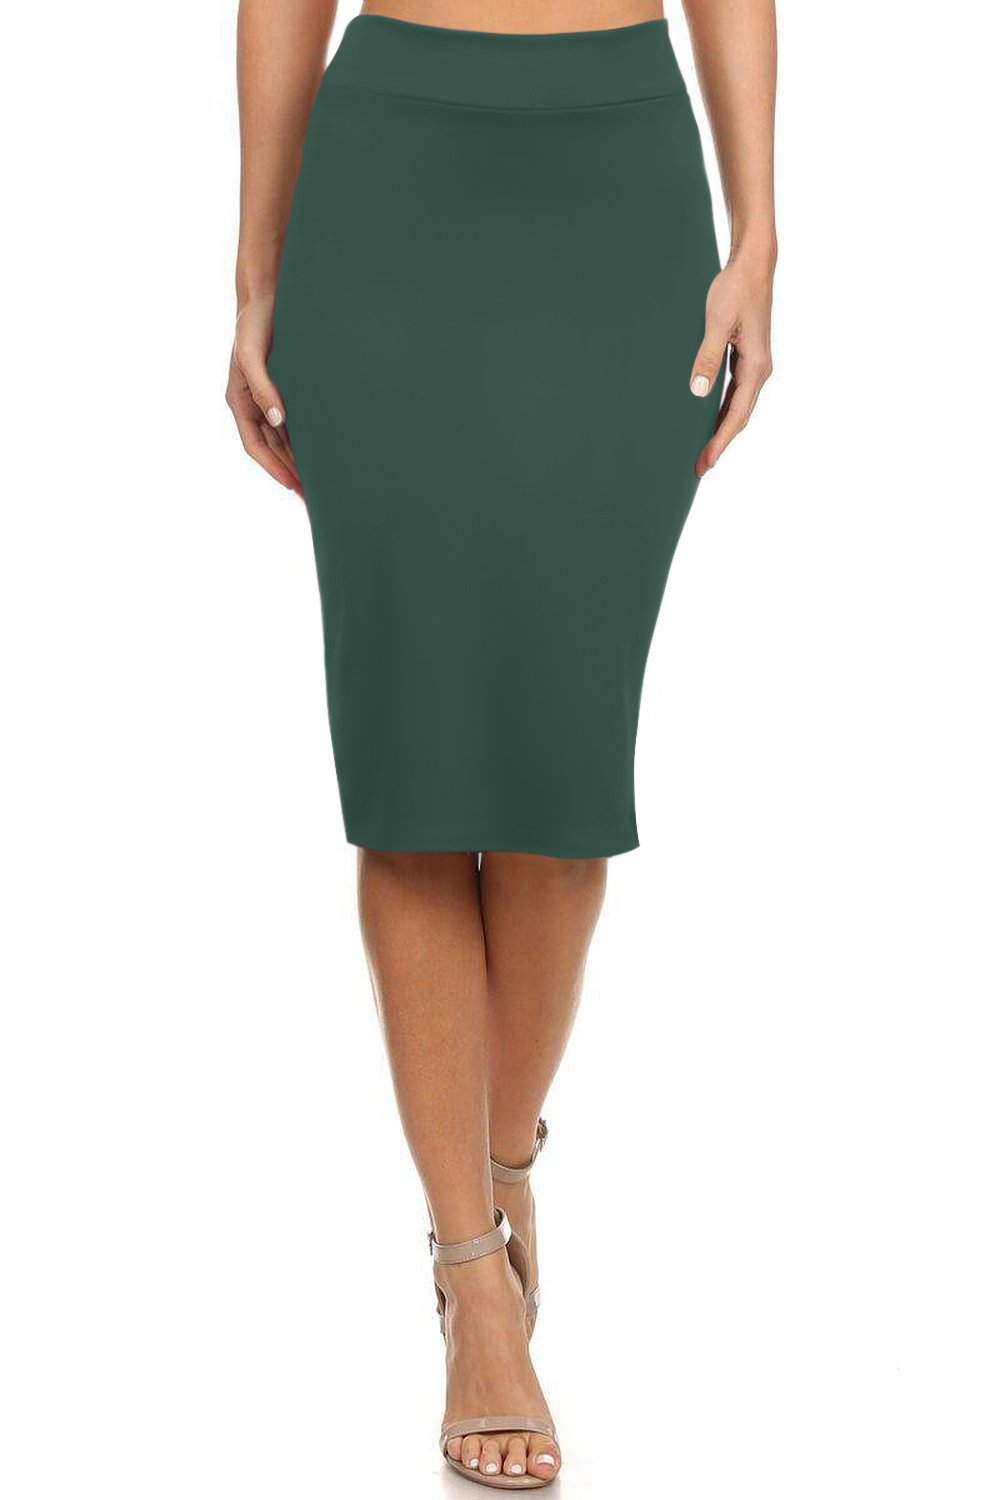 Simlu Women's Below The Knee Pencil Skirt for Office Wear - Made in USA Dark Green Small